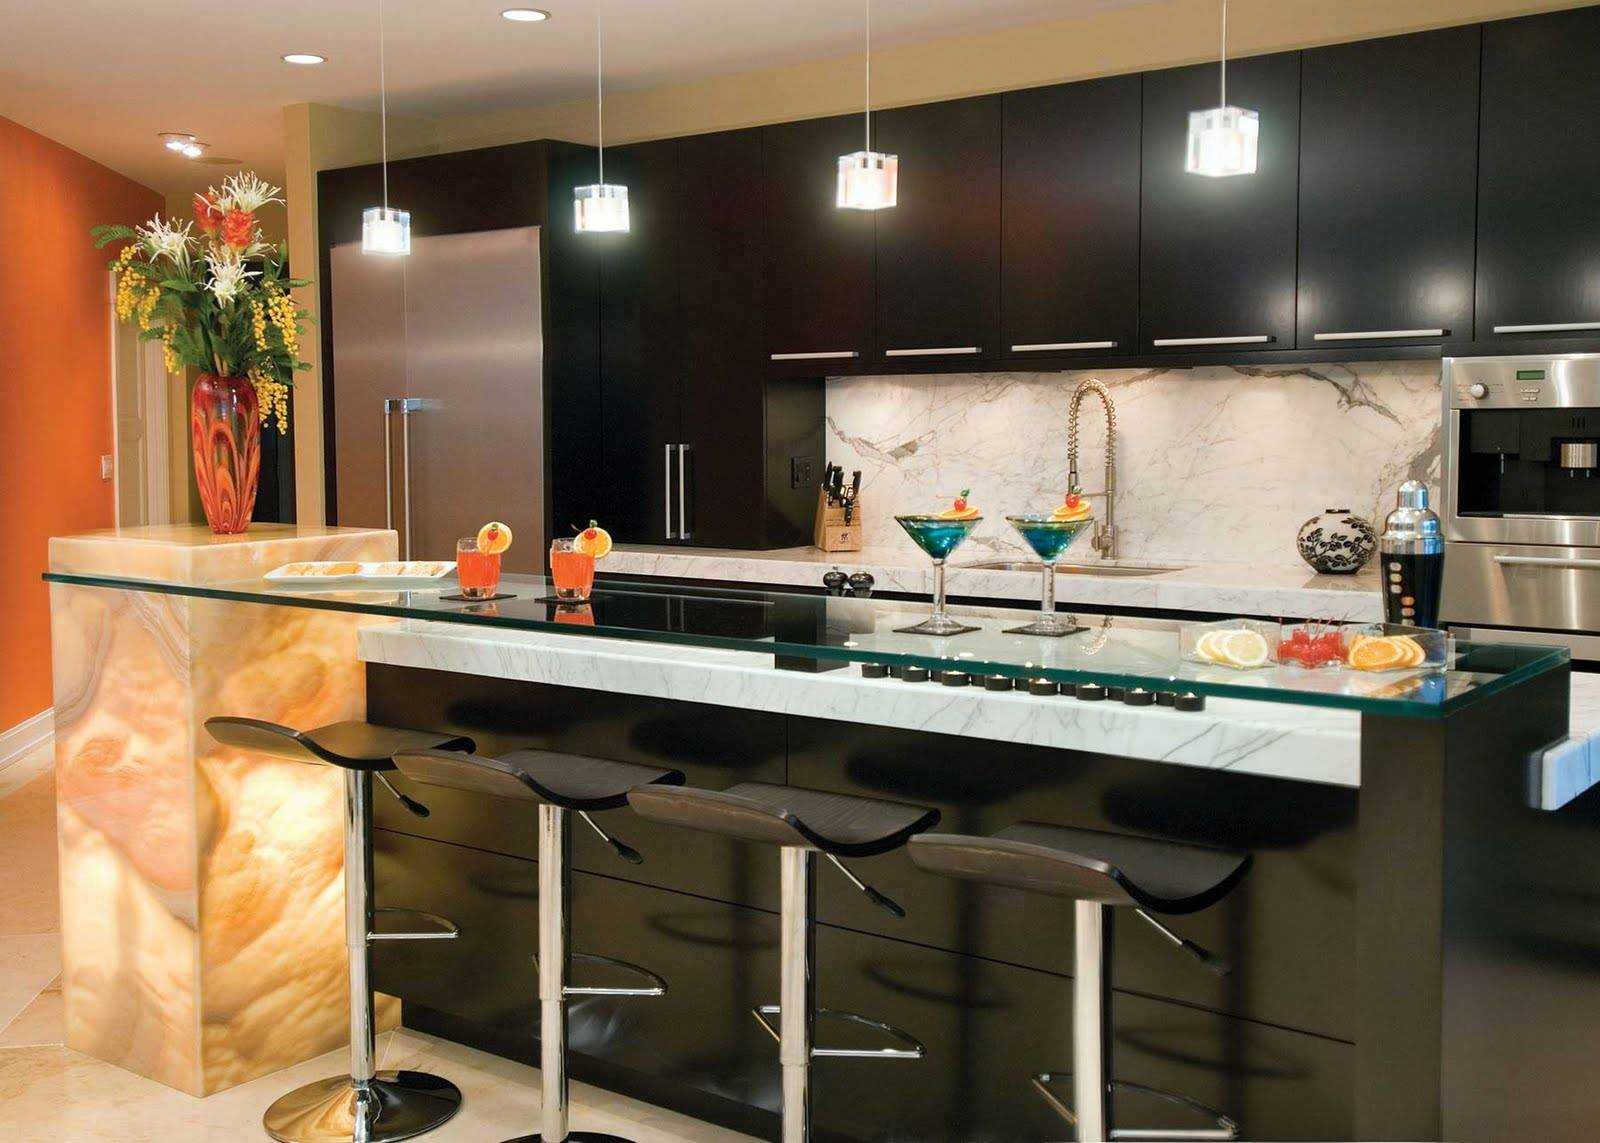 Spectacular black decorated kitchen zone with the island having glass top